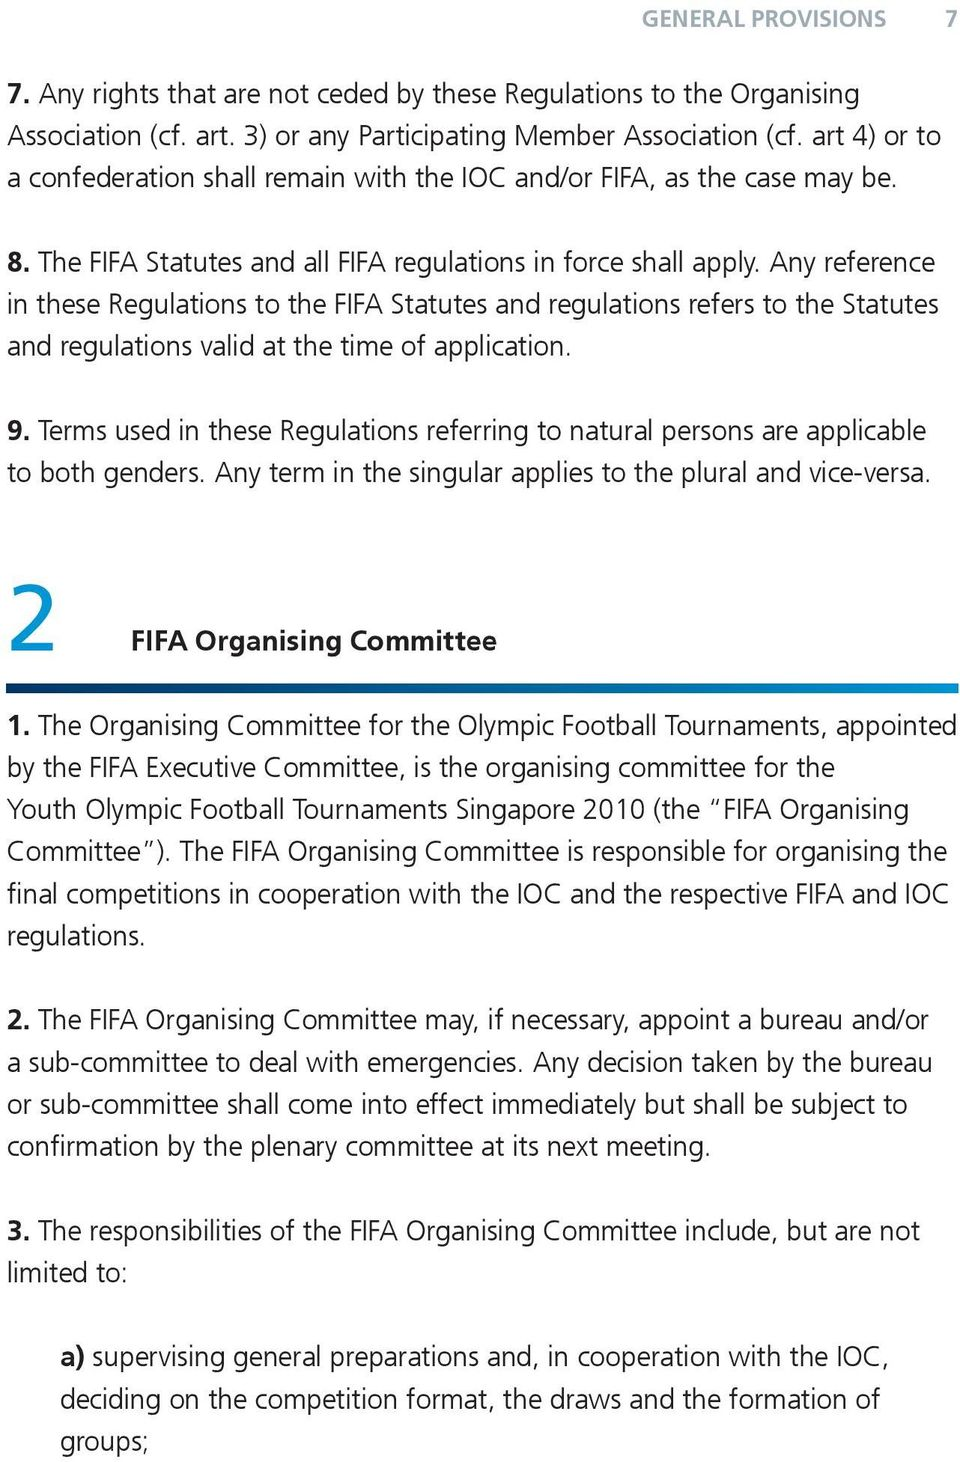 Any reference in these Regulations to the FIFA Statutes and regulations refers to the Statutes and regulations valid at the time of application. 9.